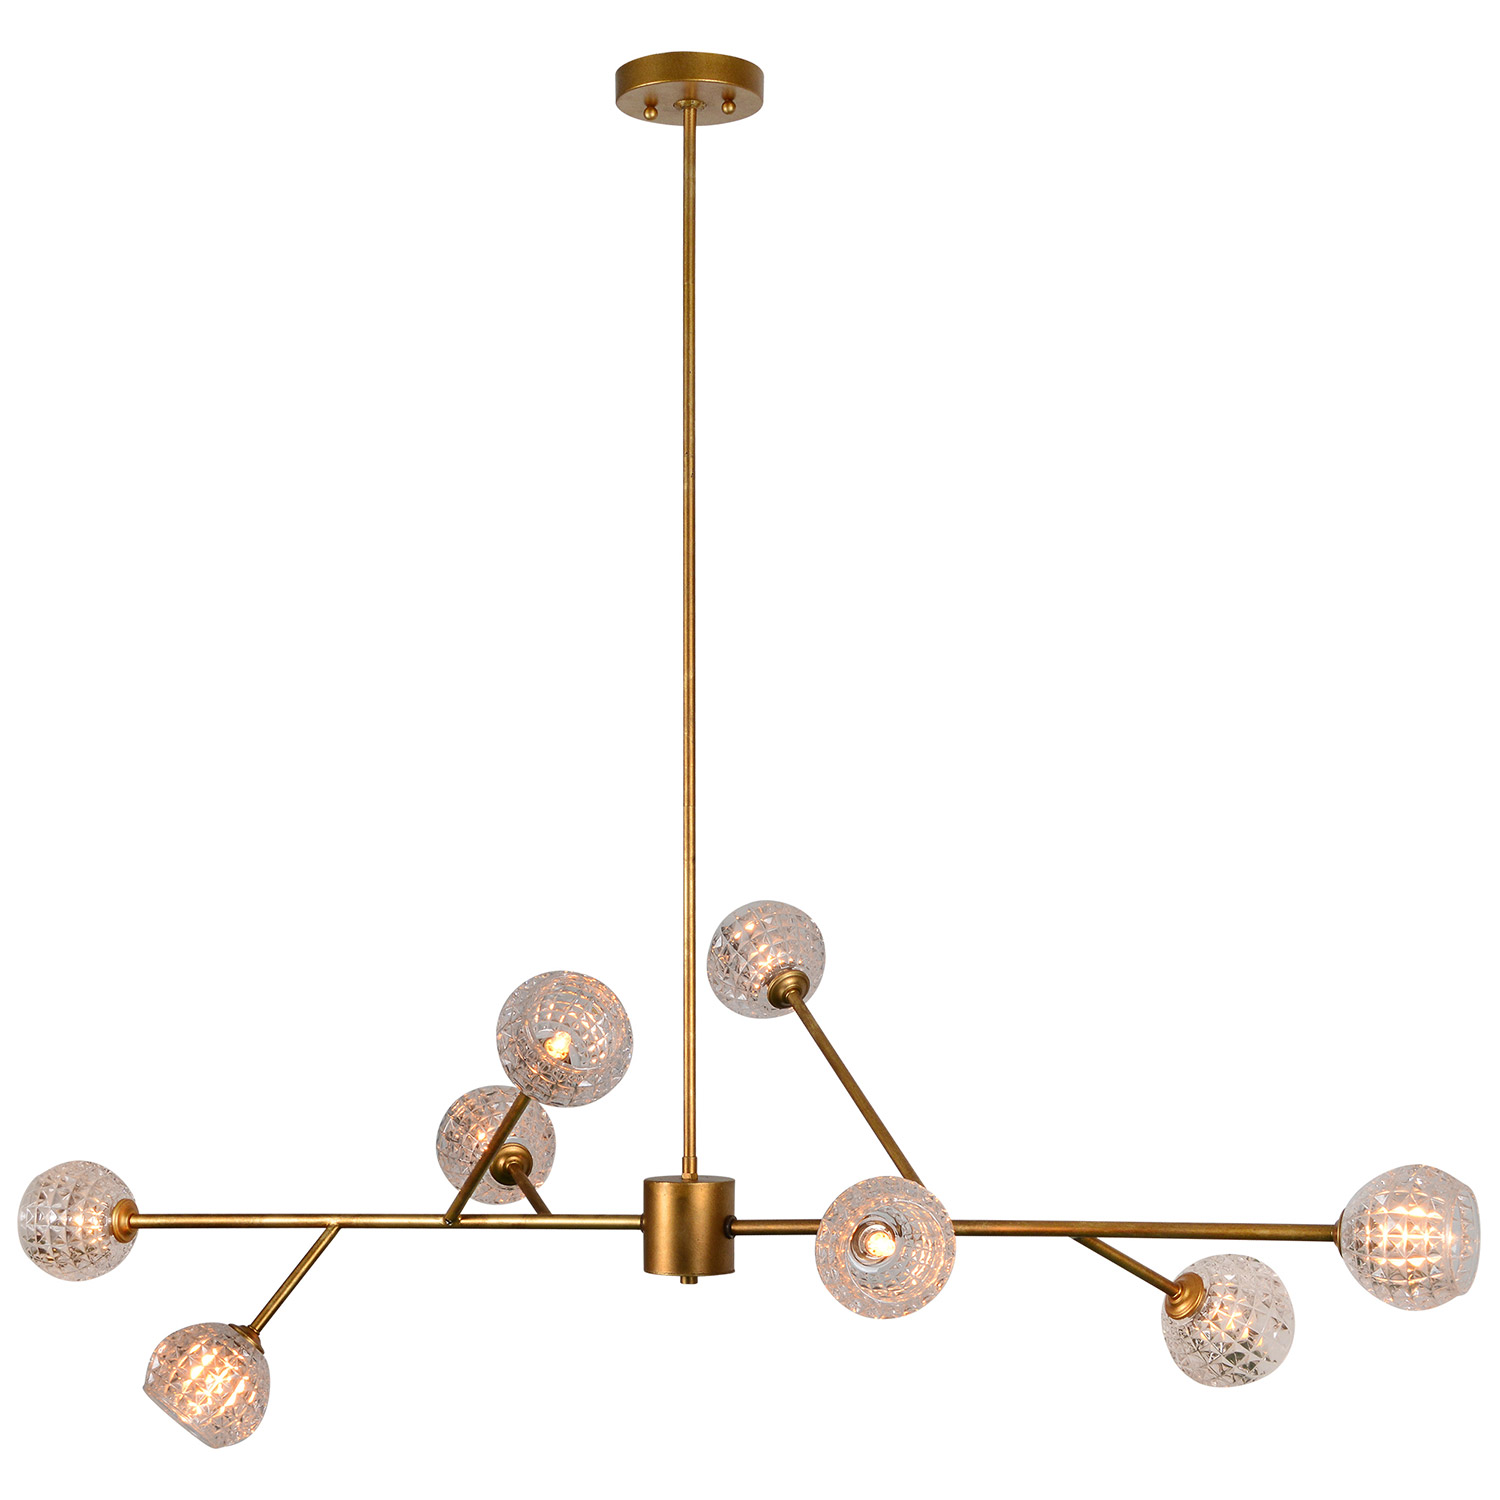 Ren-Wil Damas Ceiling Fixture - Antique Gold